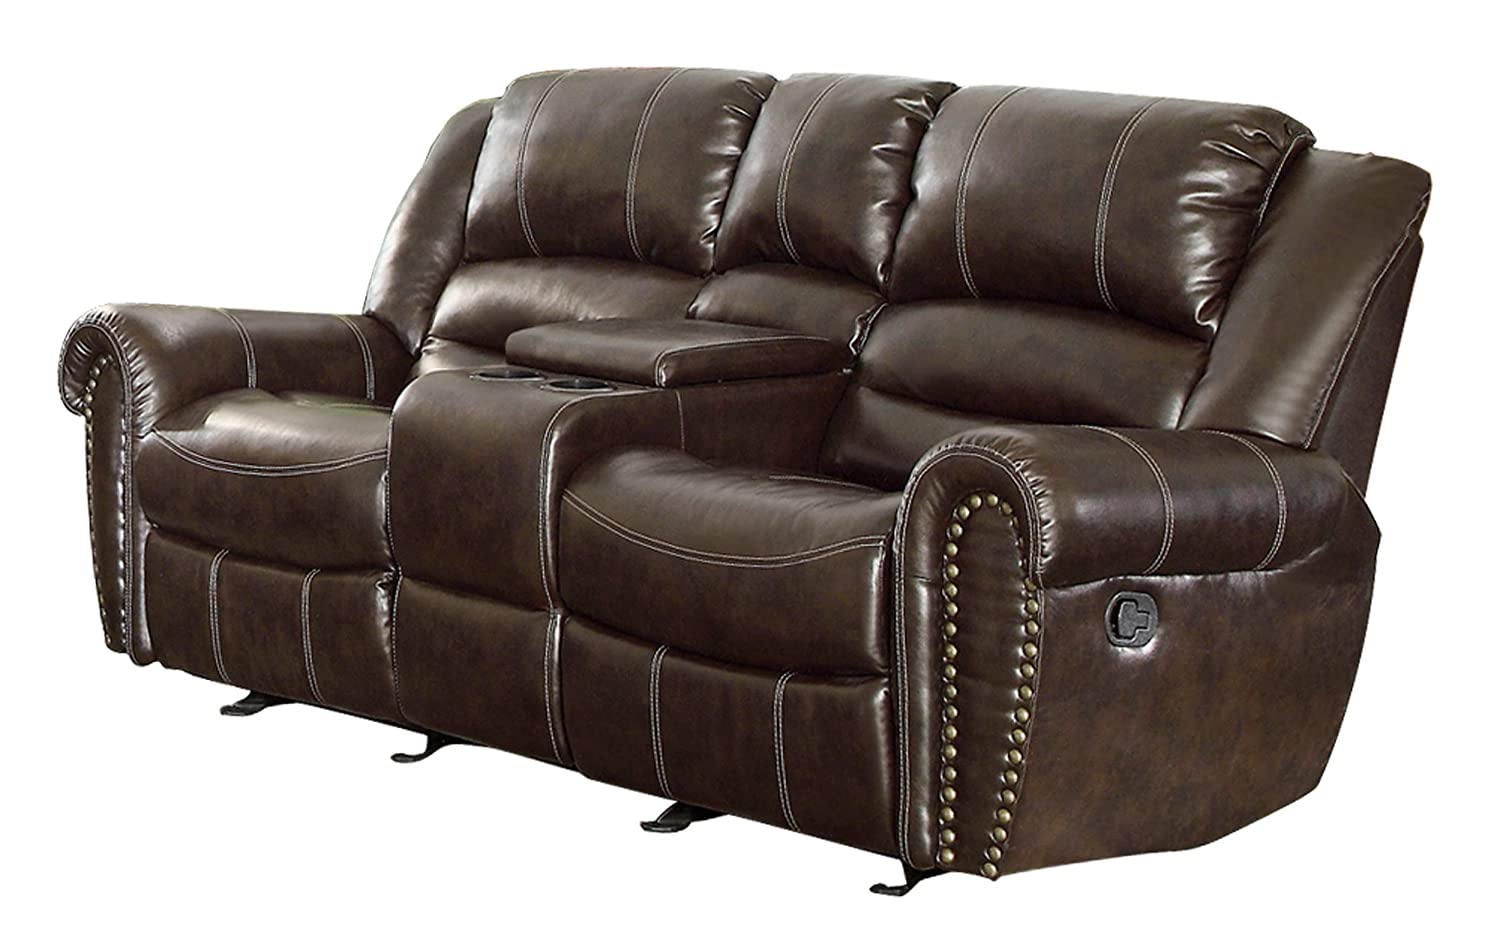 Amazon.com Homelegance 9668BRW-2 Double Glider Reclining Loveseat with Center Console Brown Bonded Leather Kitchen u0026 Dining  sc 1 st  Amazon.com : 2 seater recliner leather sofa - islam-shia.org